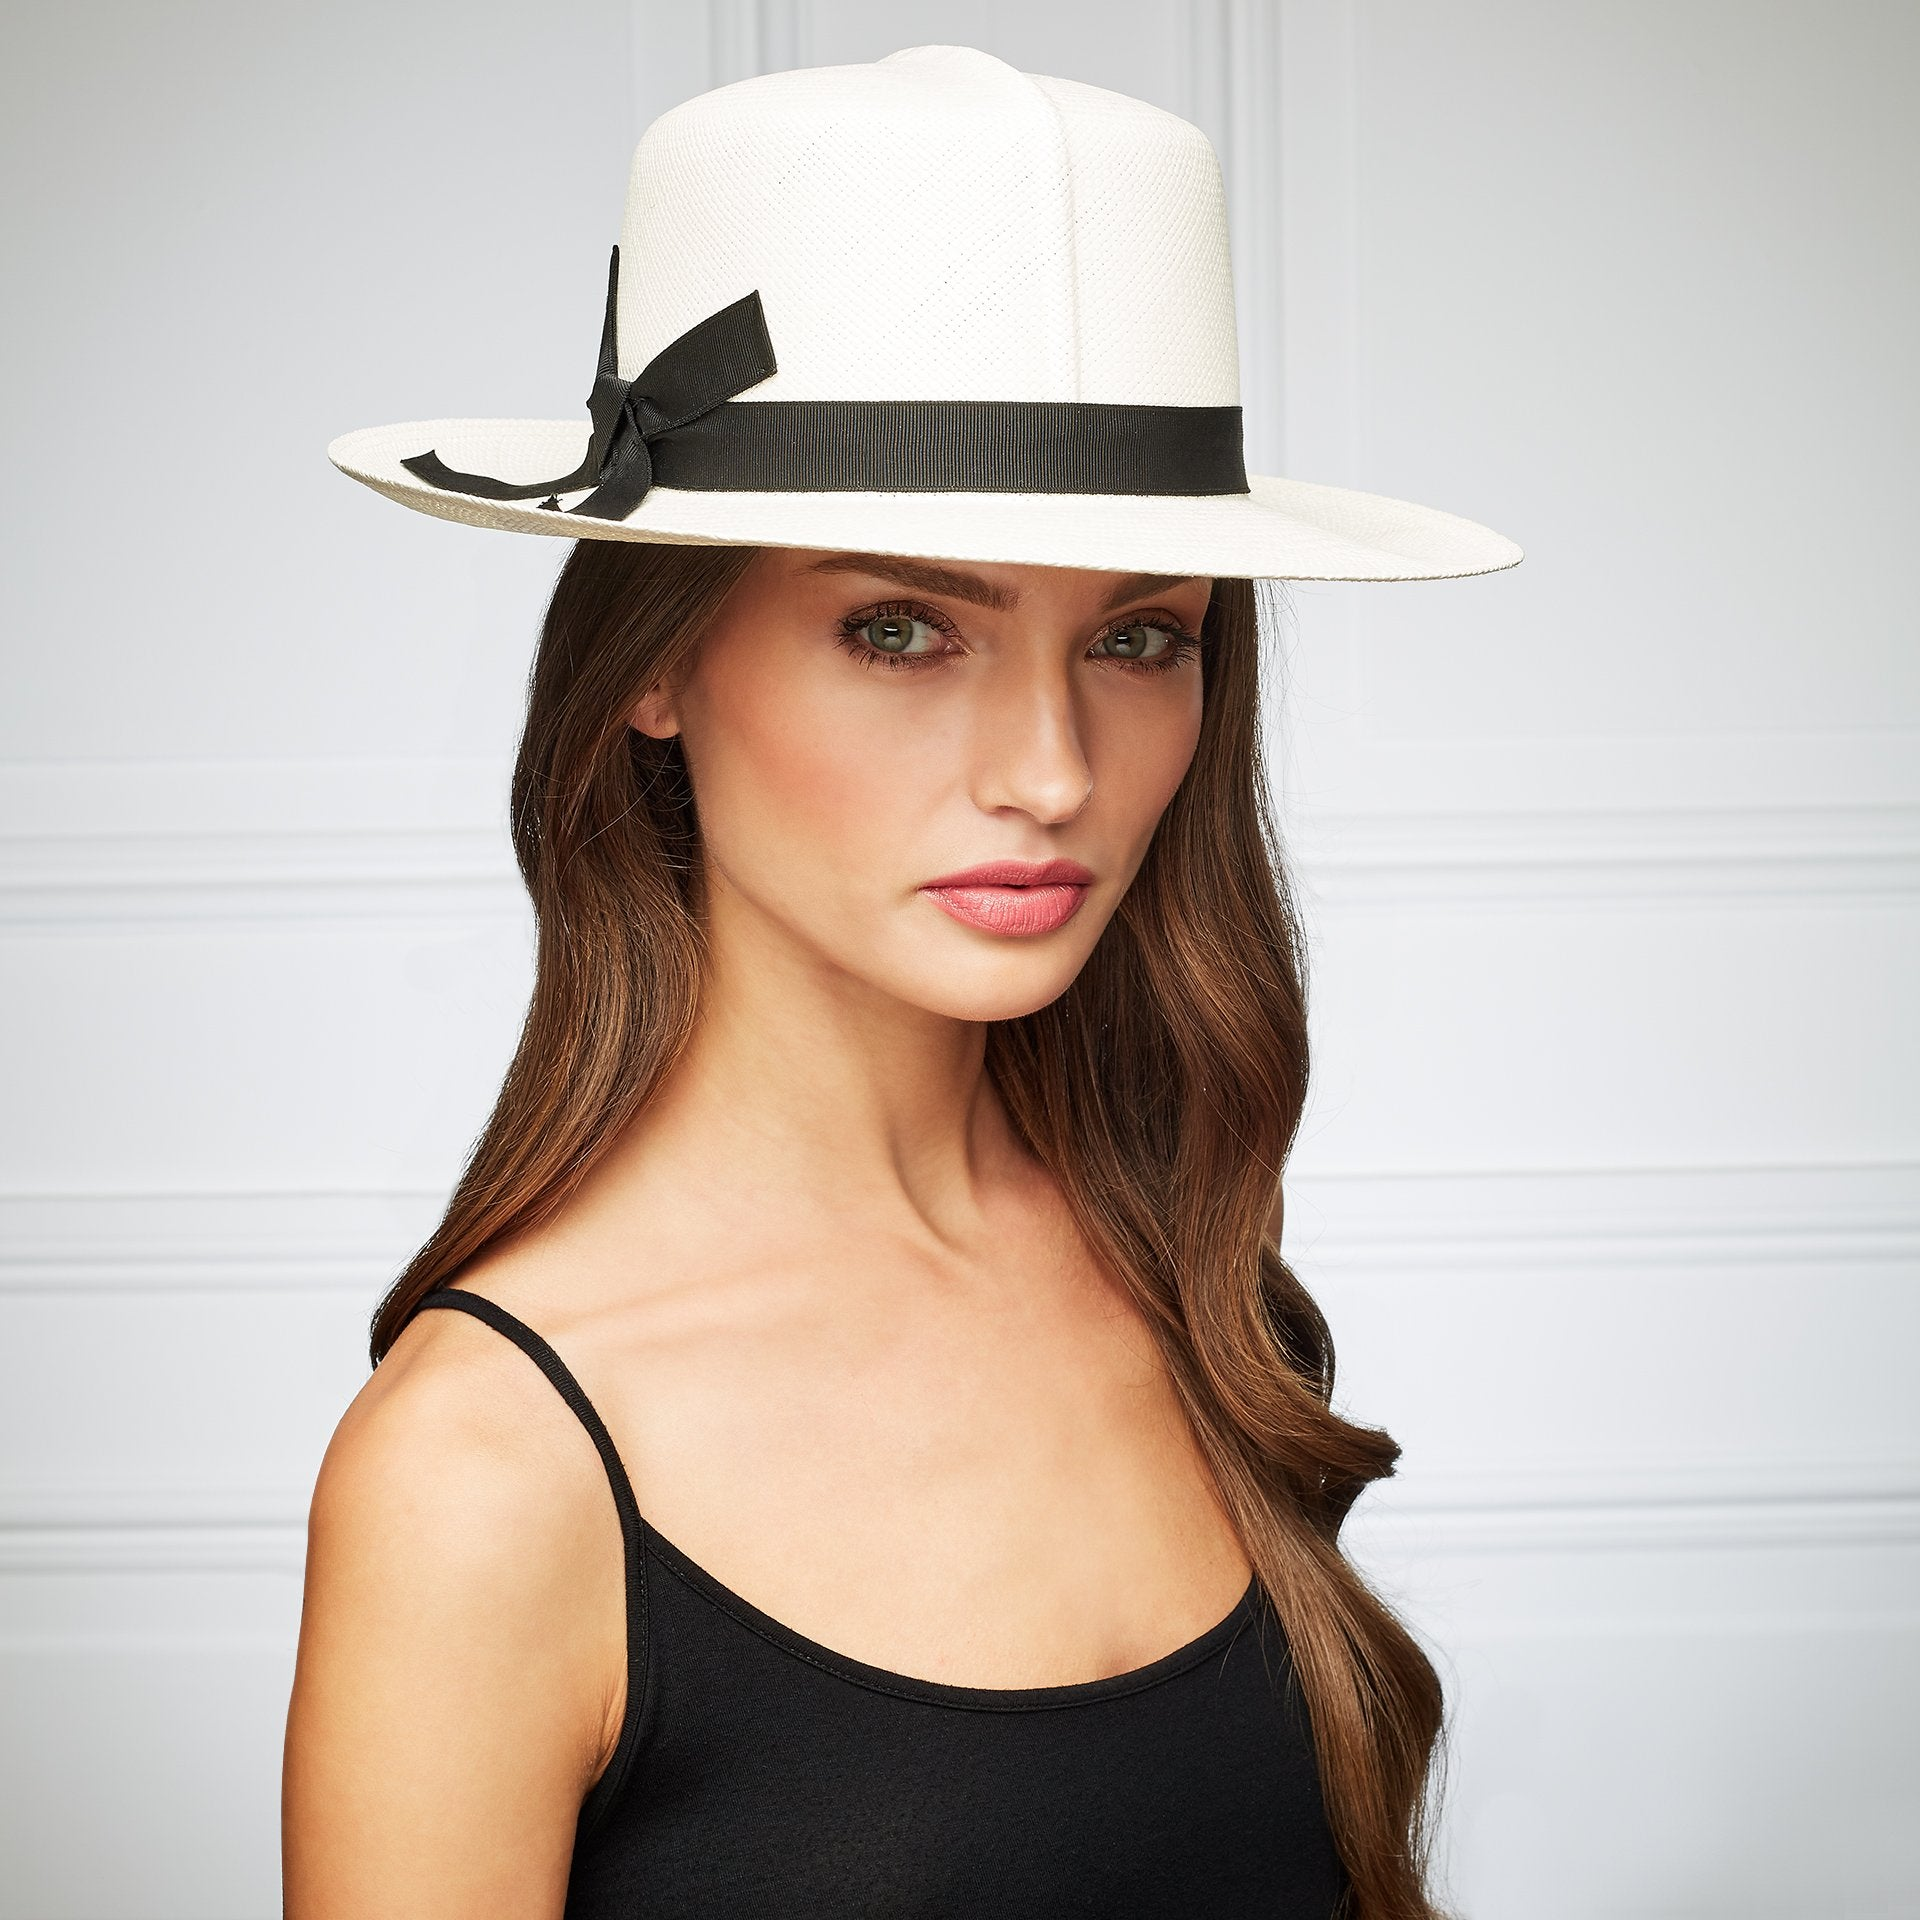 St Ives rollable panama - Panamas, Straw and Sun Hats for Women - Lock & Co. Hatters London UK